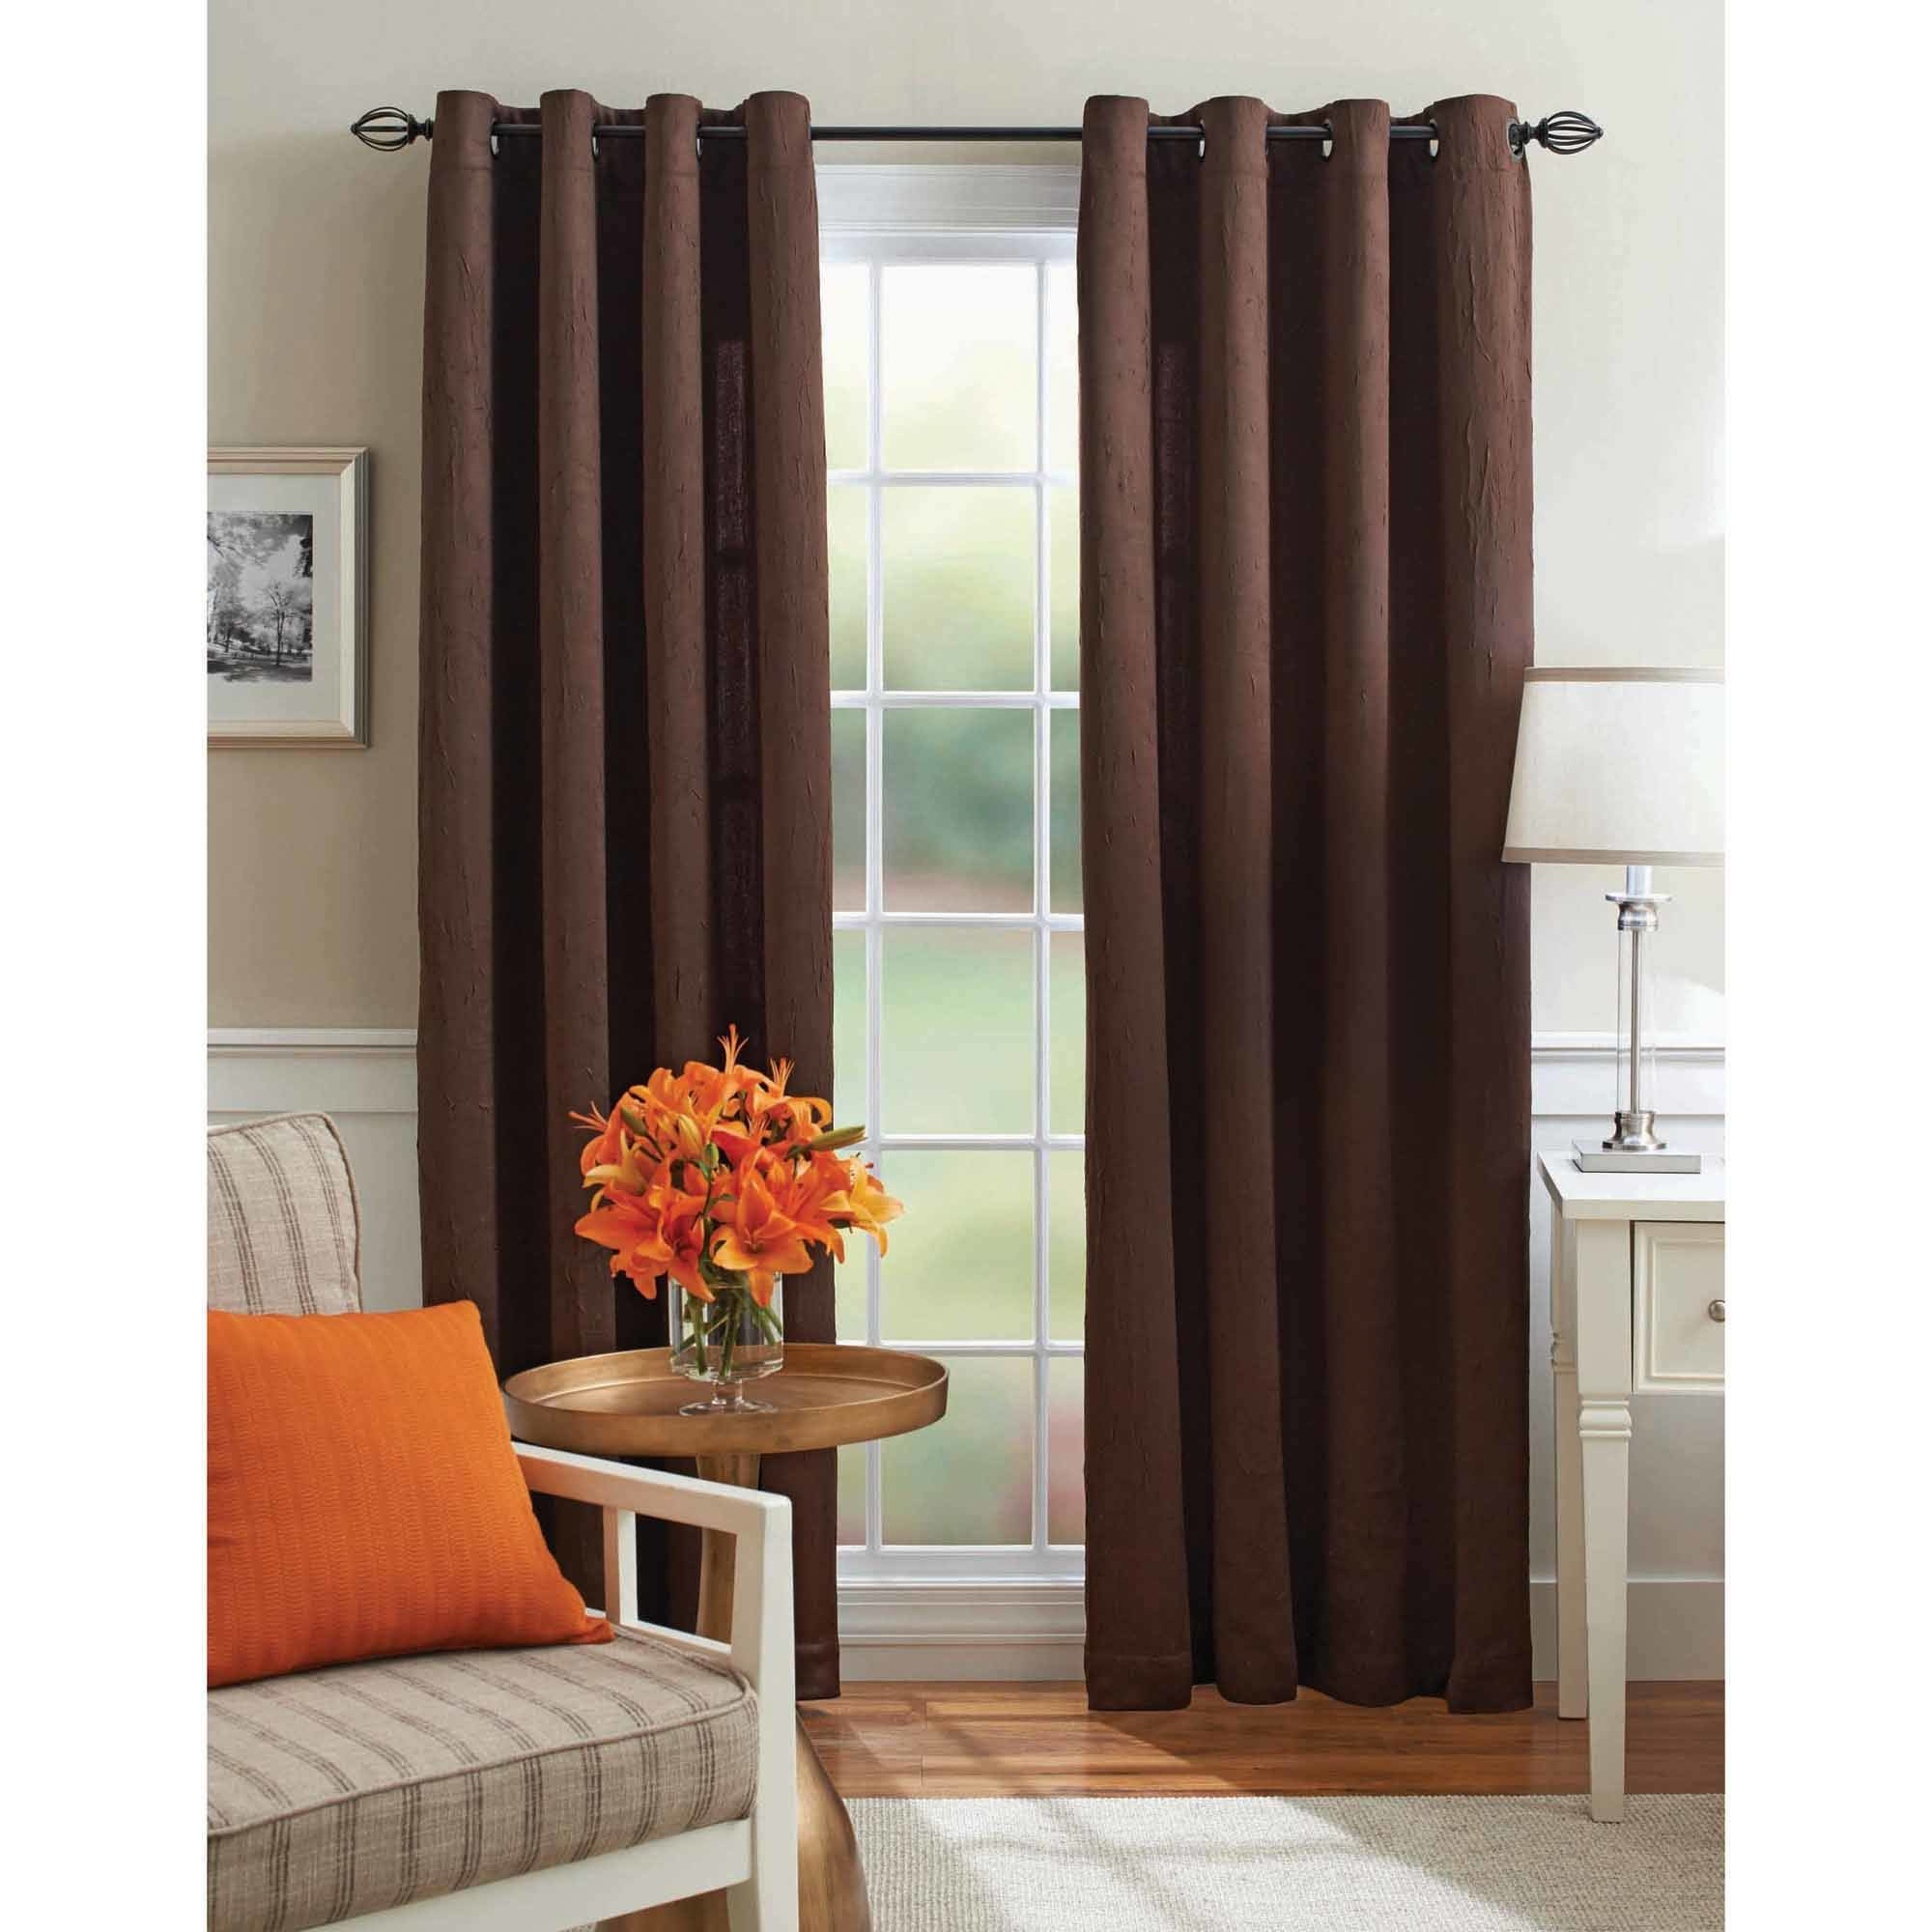 Best Curtain Curtains At Walmart For Elegant Home Accessories With Pictures